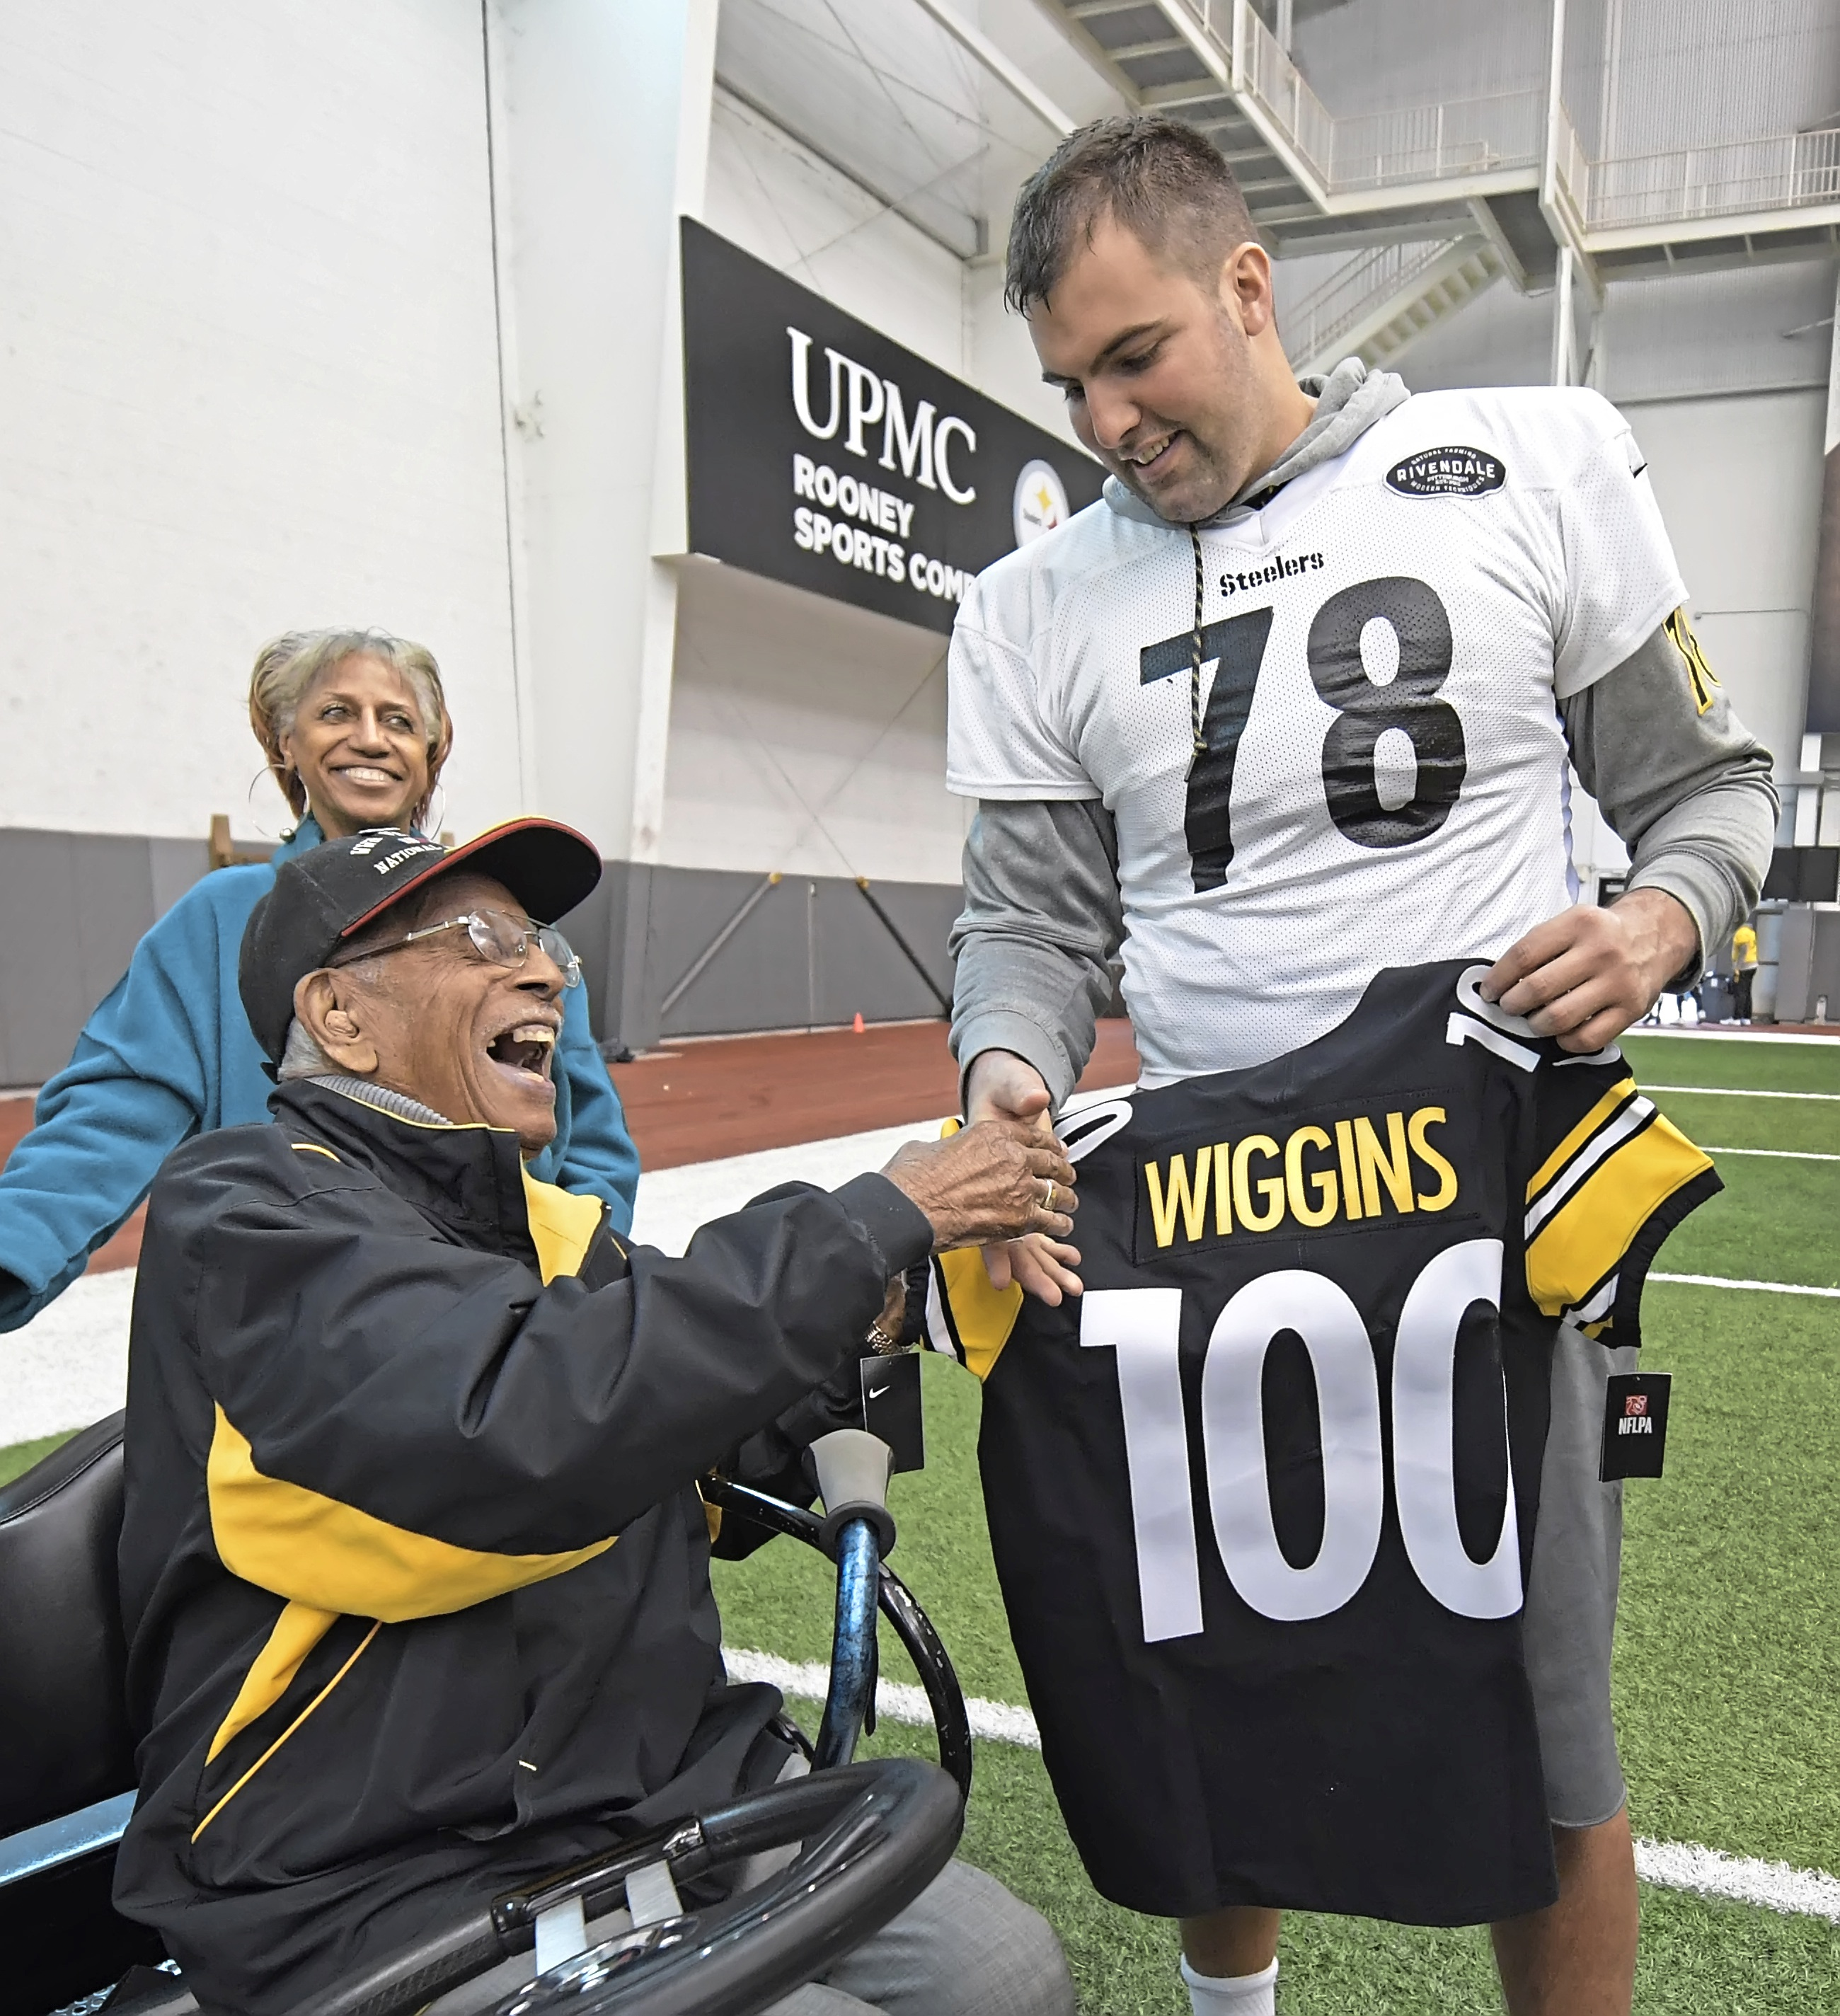 huge discount ea239 3fc15 Steelers honor 100-year-old veteran with No. 100 jersey ...